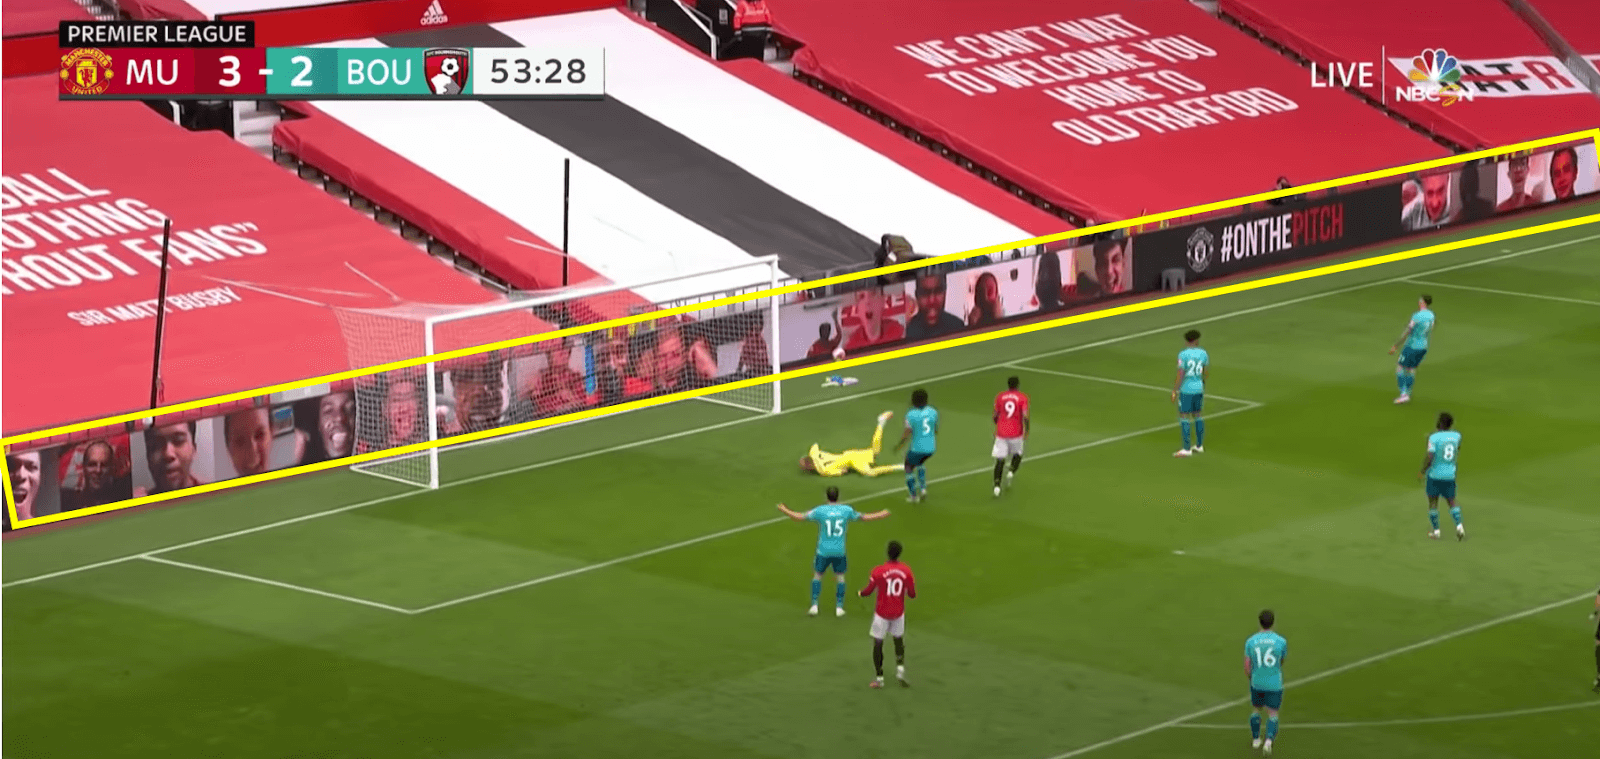 Goal line seat tarps at Manchester United game